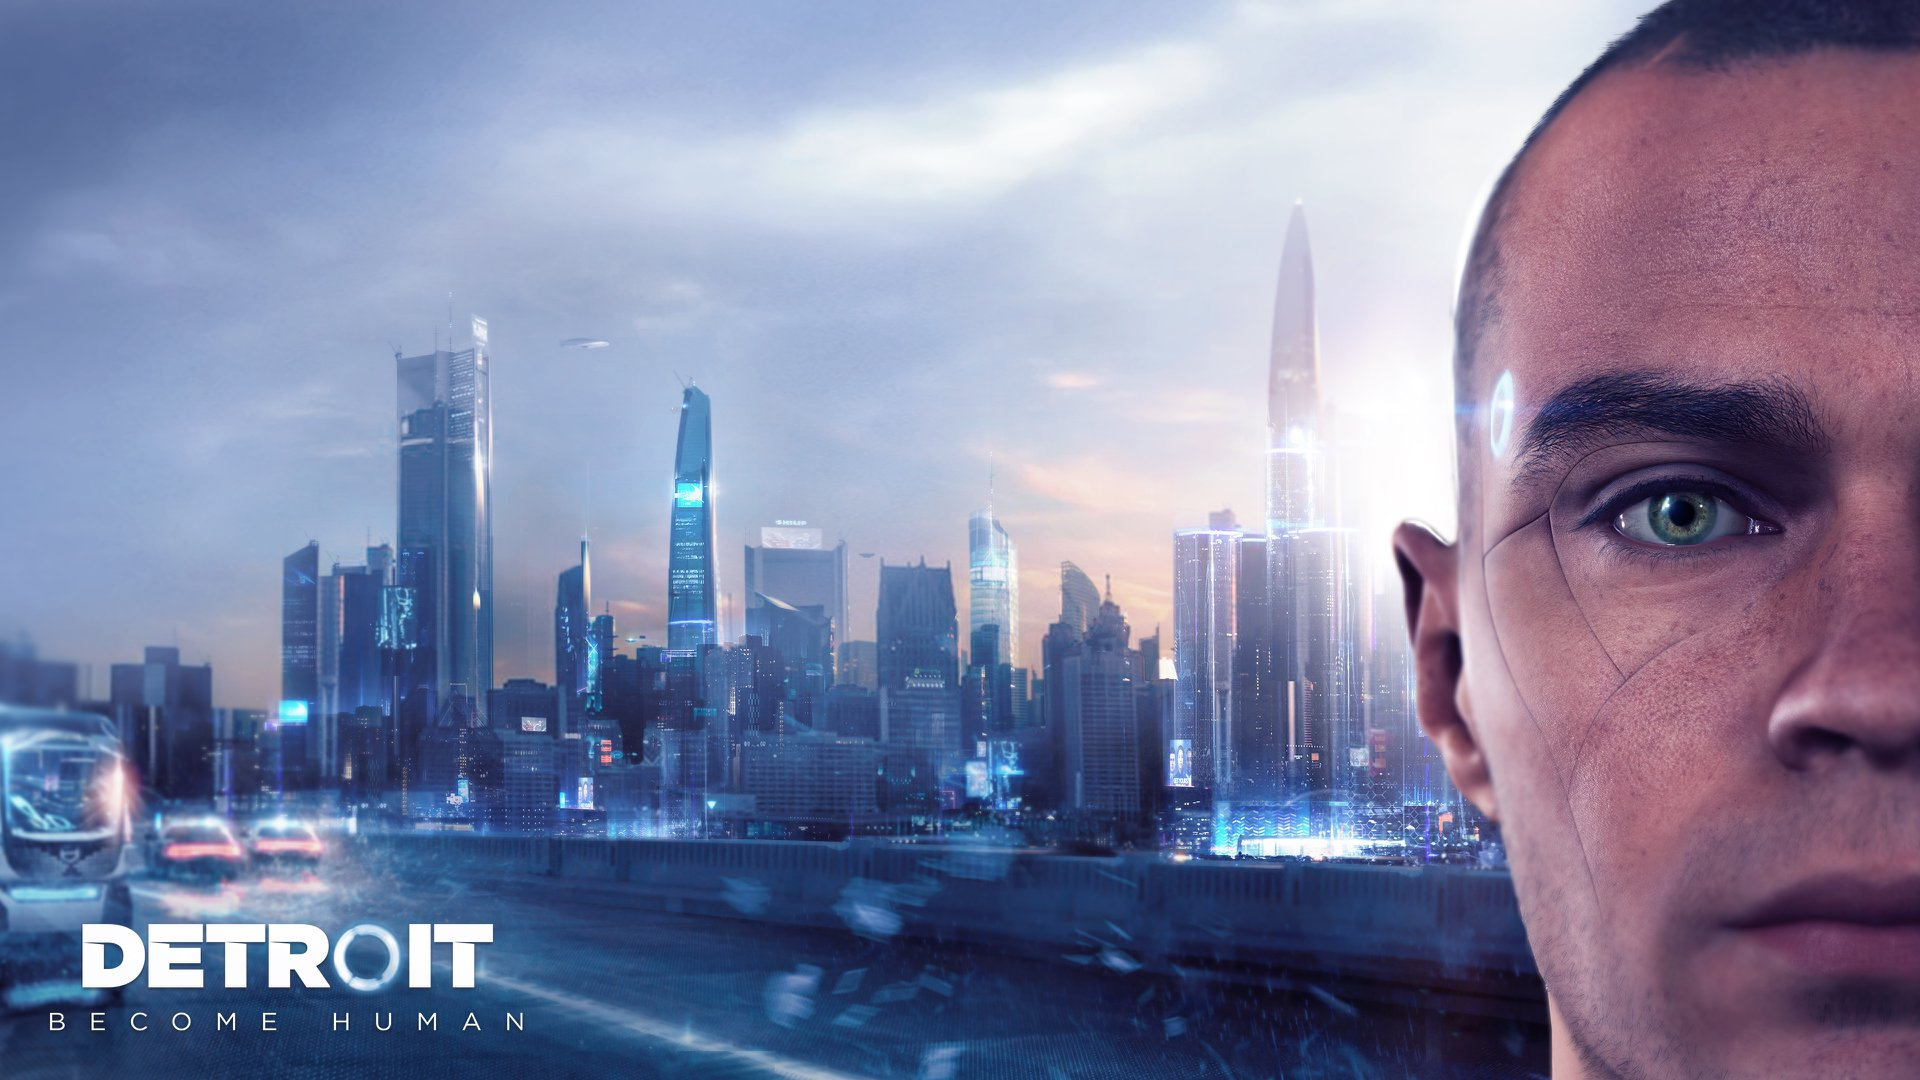 Home Screen Cute Wallpapers For Girls Markus Detroit Become Human Hd Games 4k Wallpapers